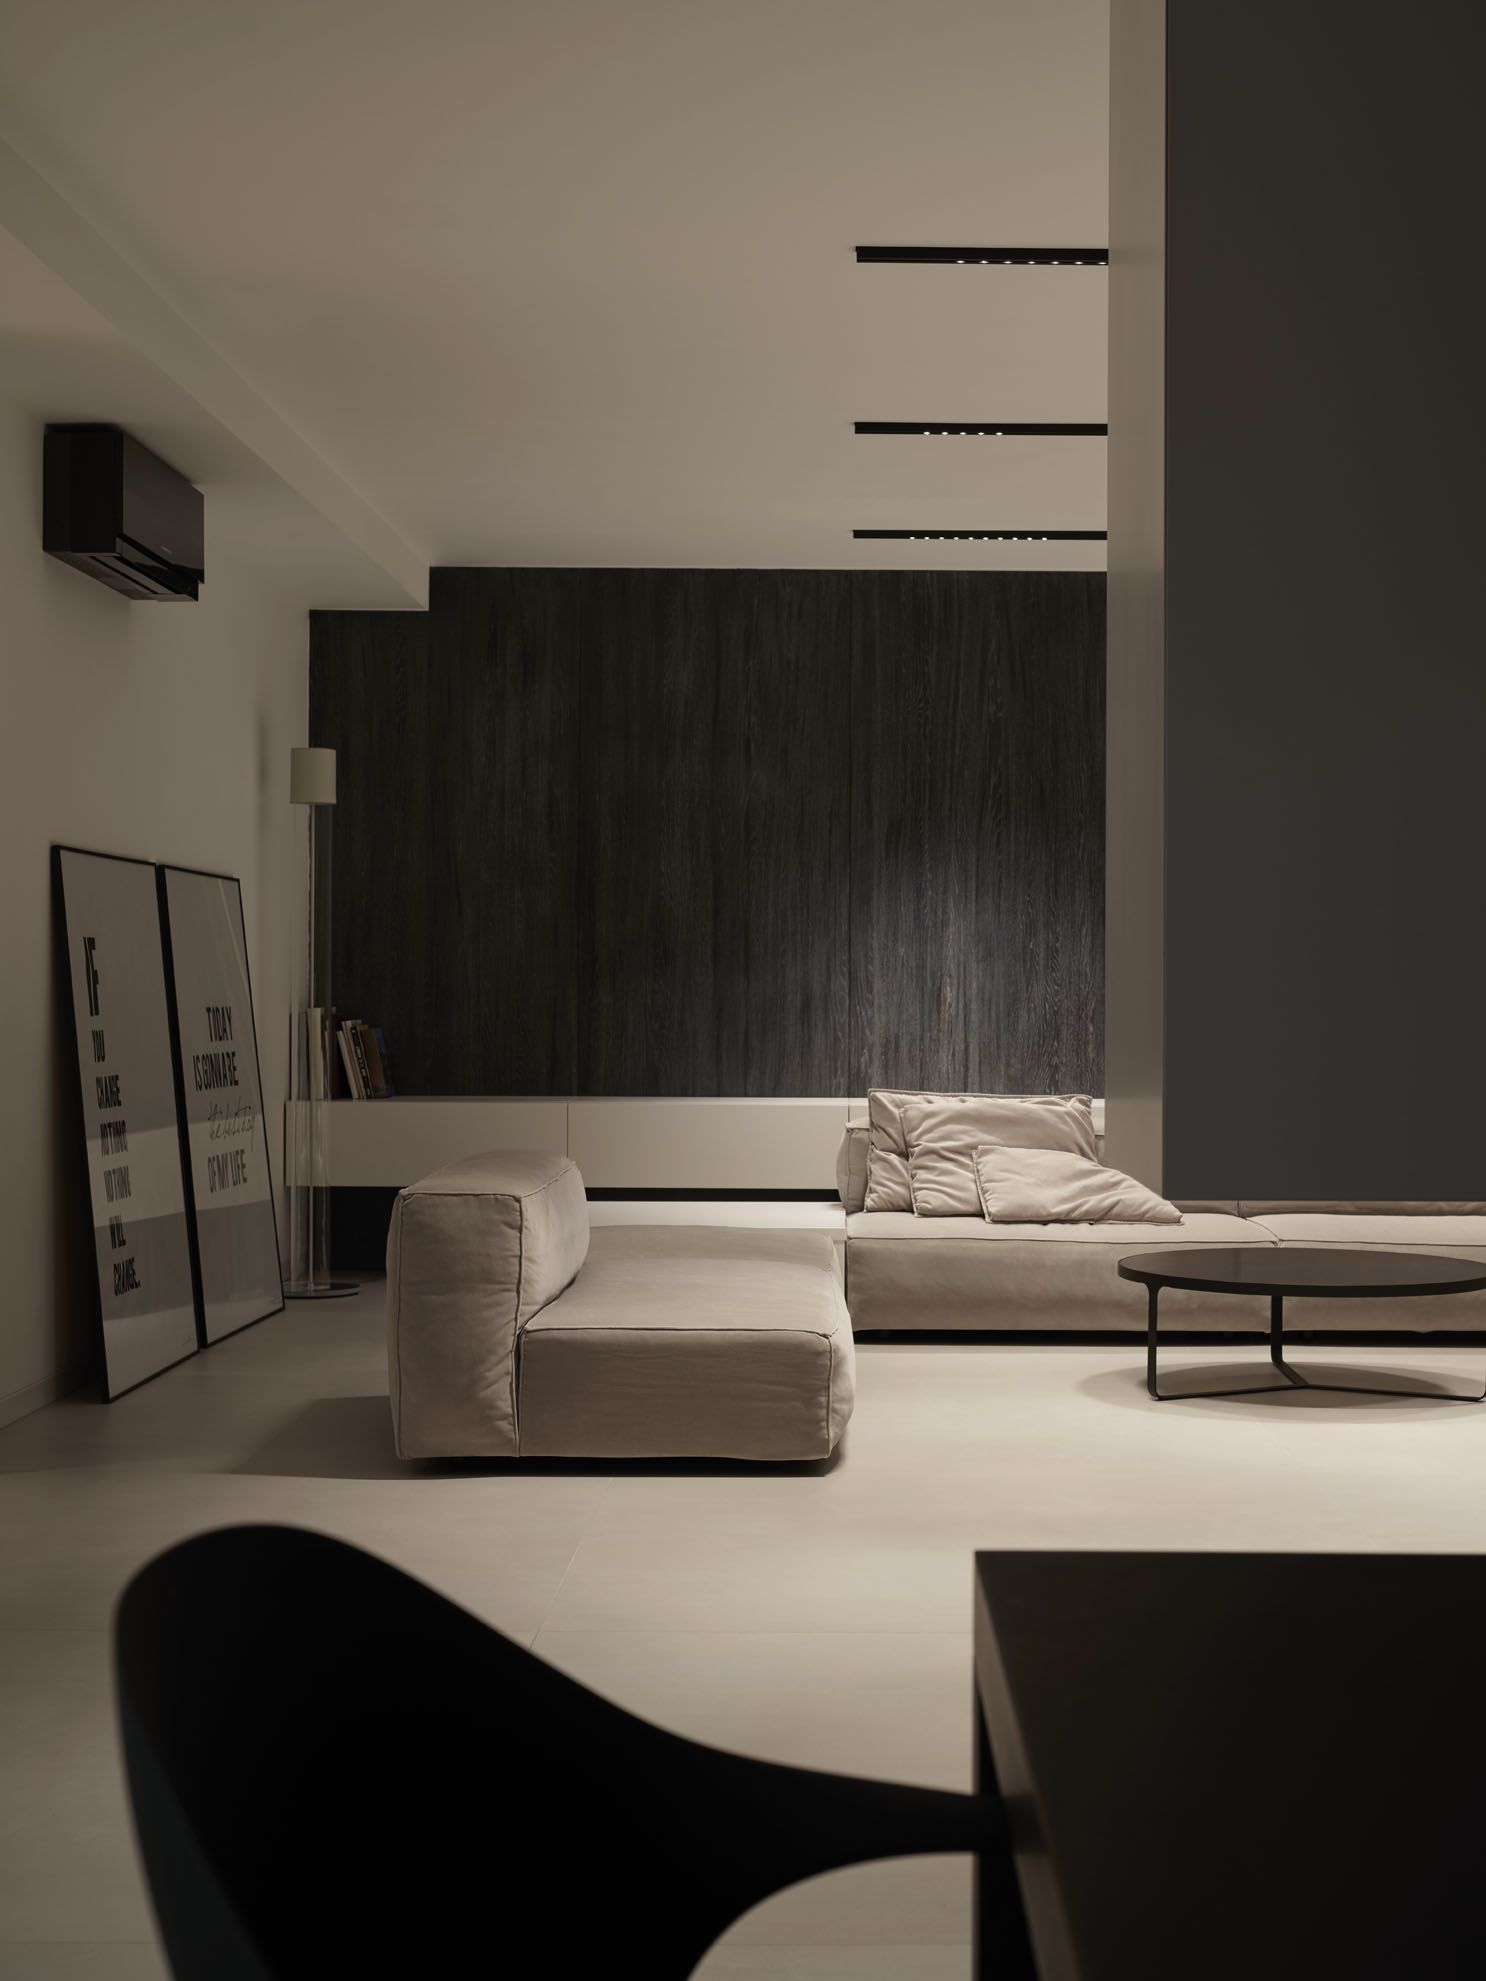 living room ideas couch sofa white ceiling kreon nuit ...